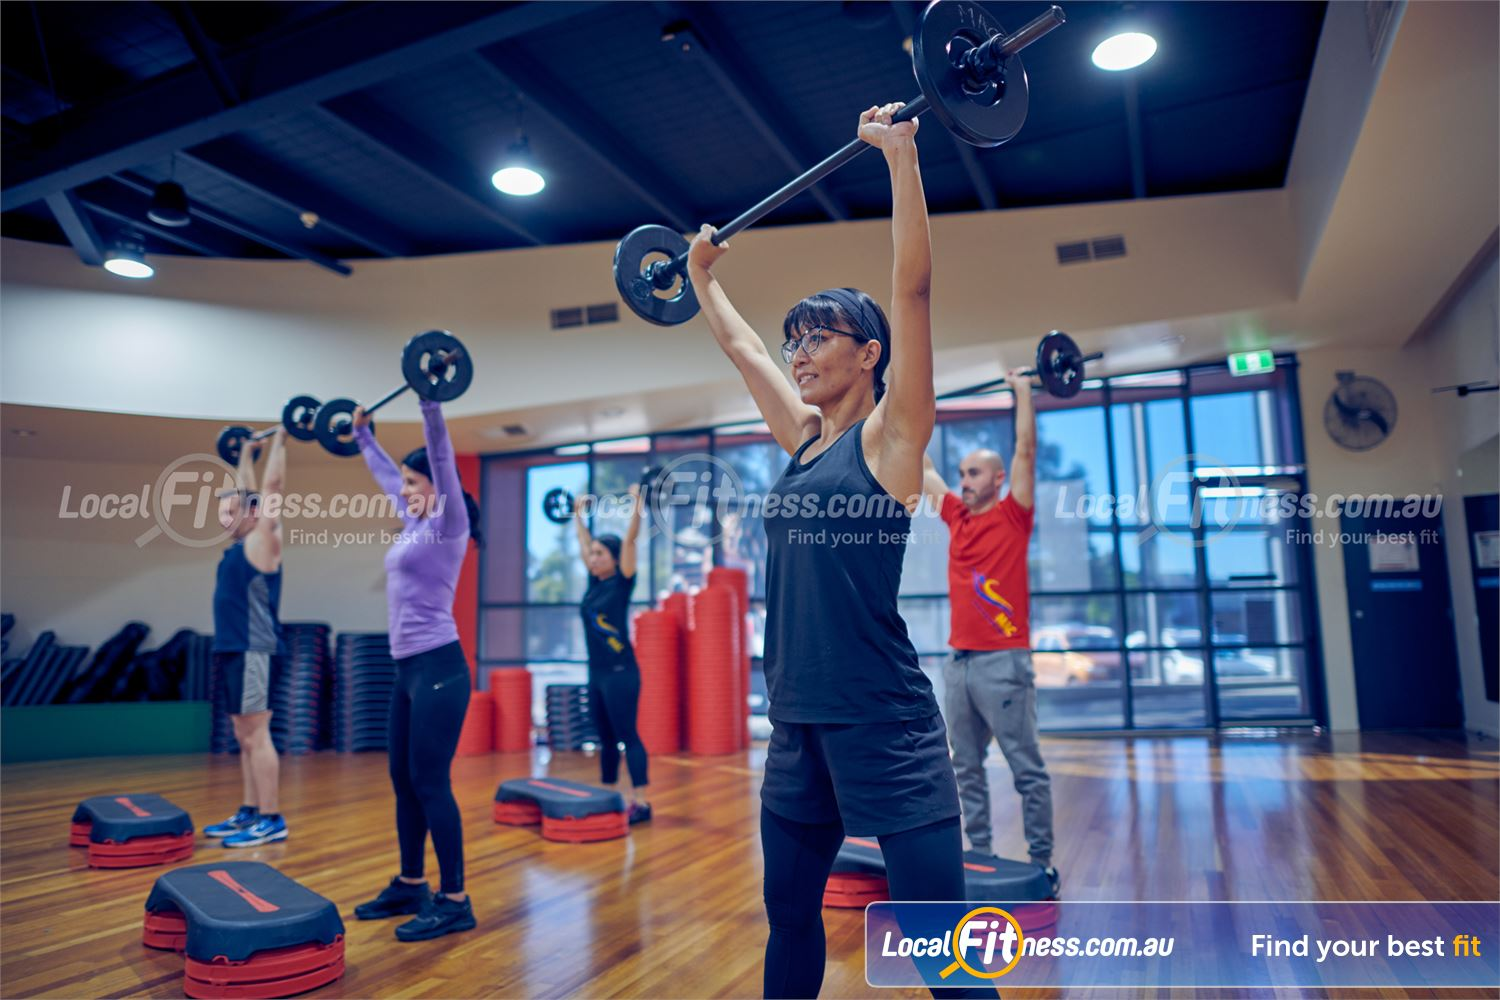 Maribyrnong Aquatic Centre Near Essendon Join like-minded people in our Les Mills BodyPump classes.